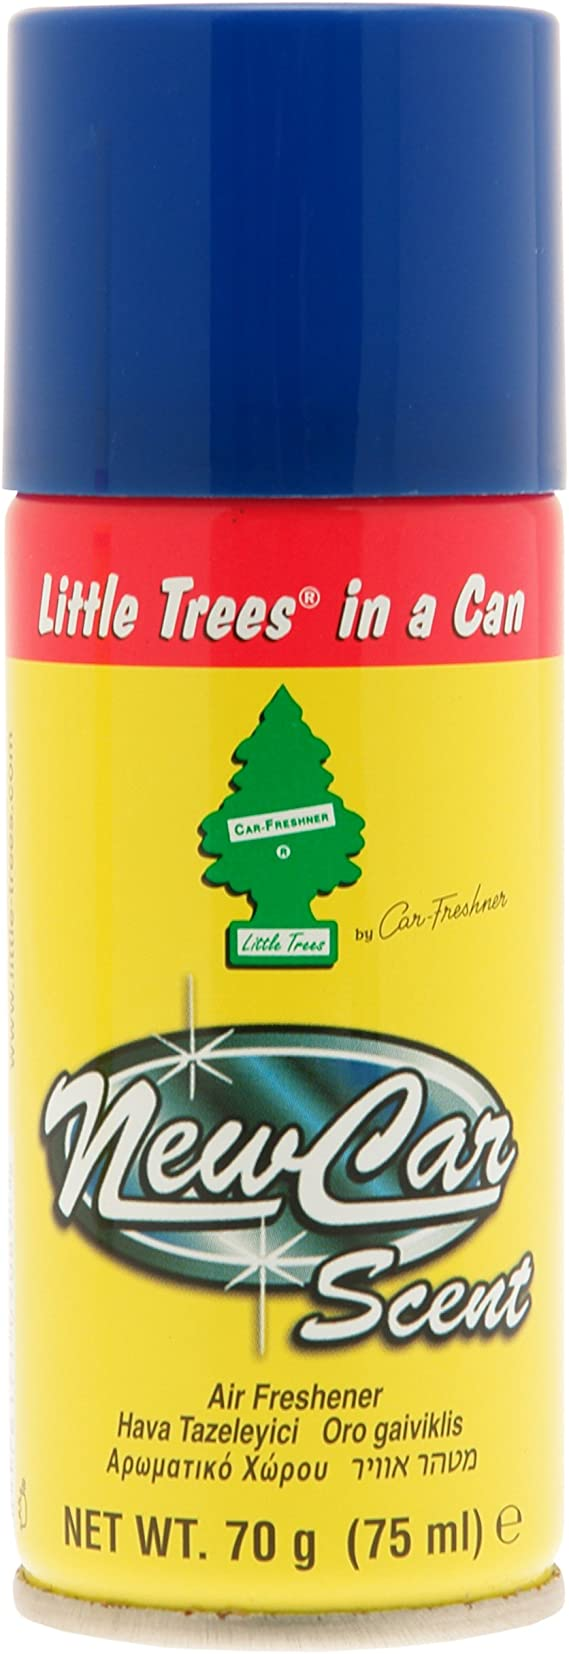 Little Tree In A Can Air Freshener - New Car